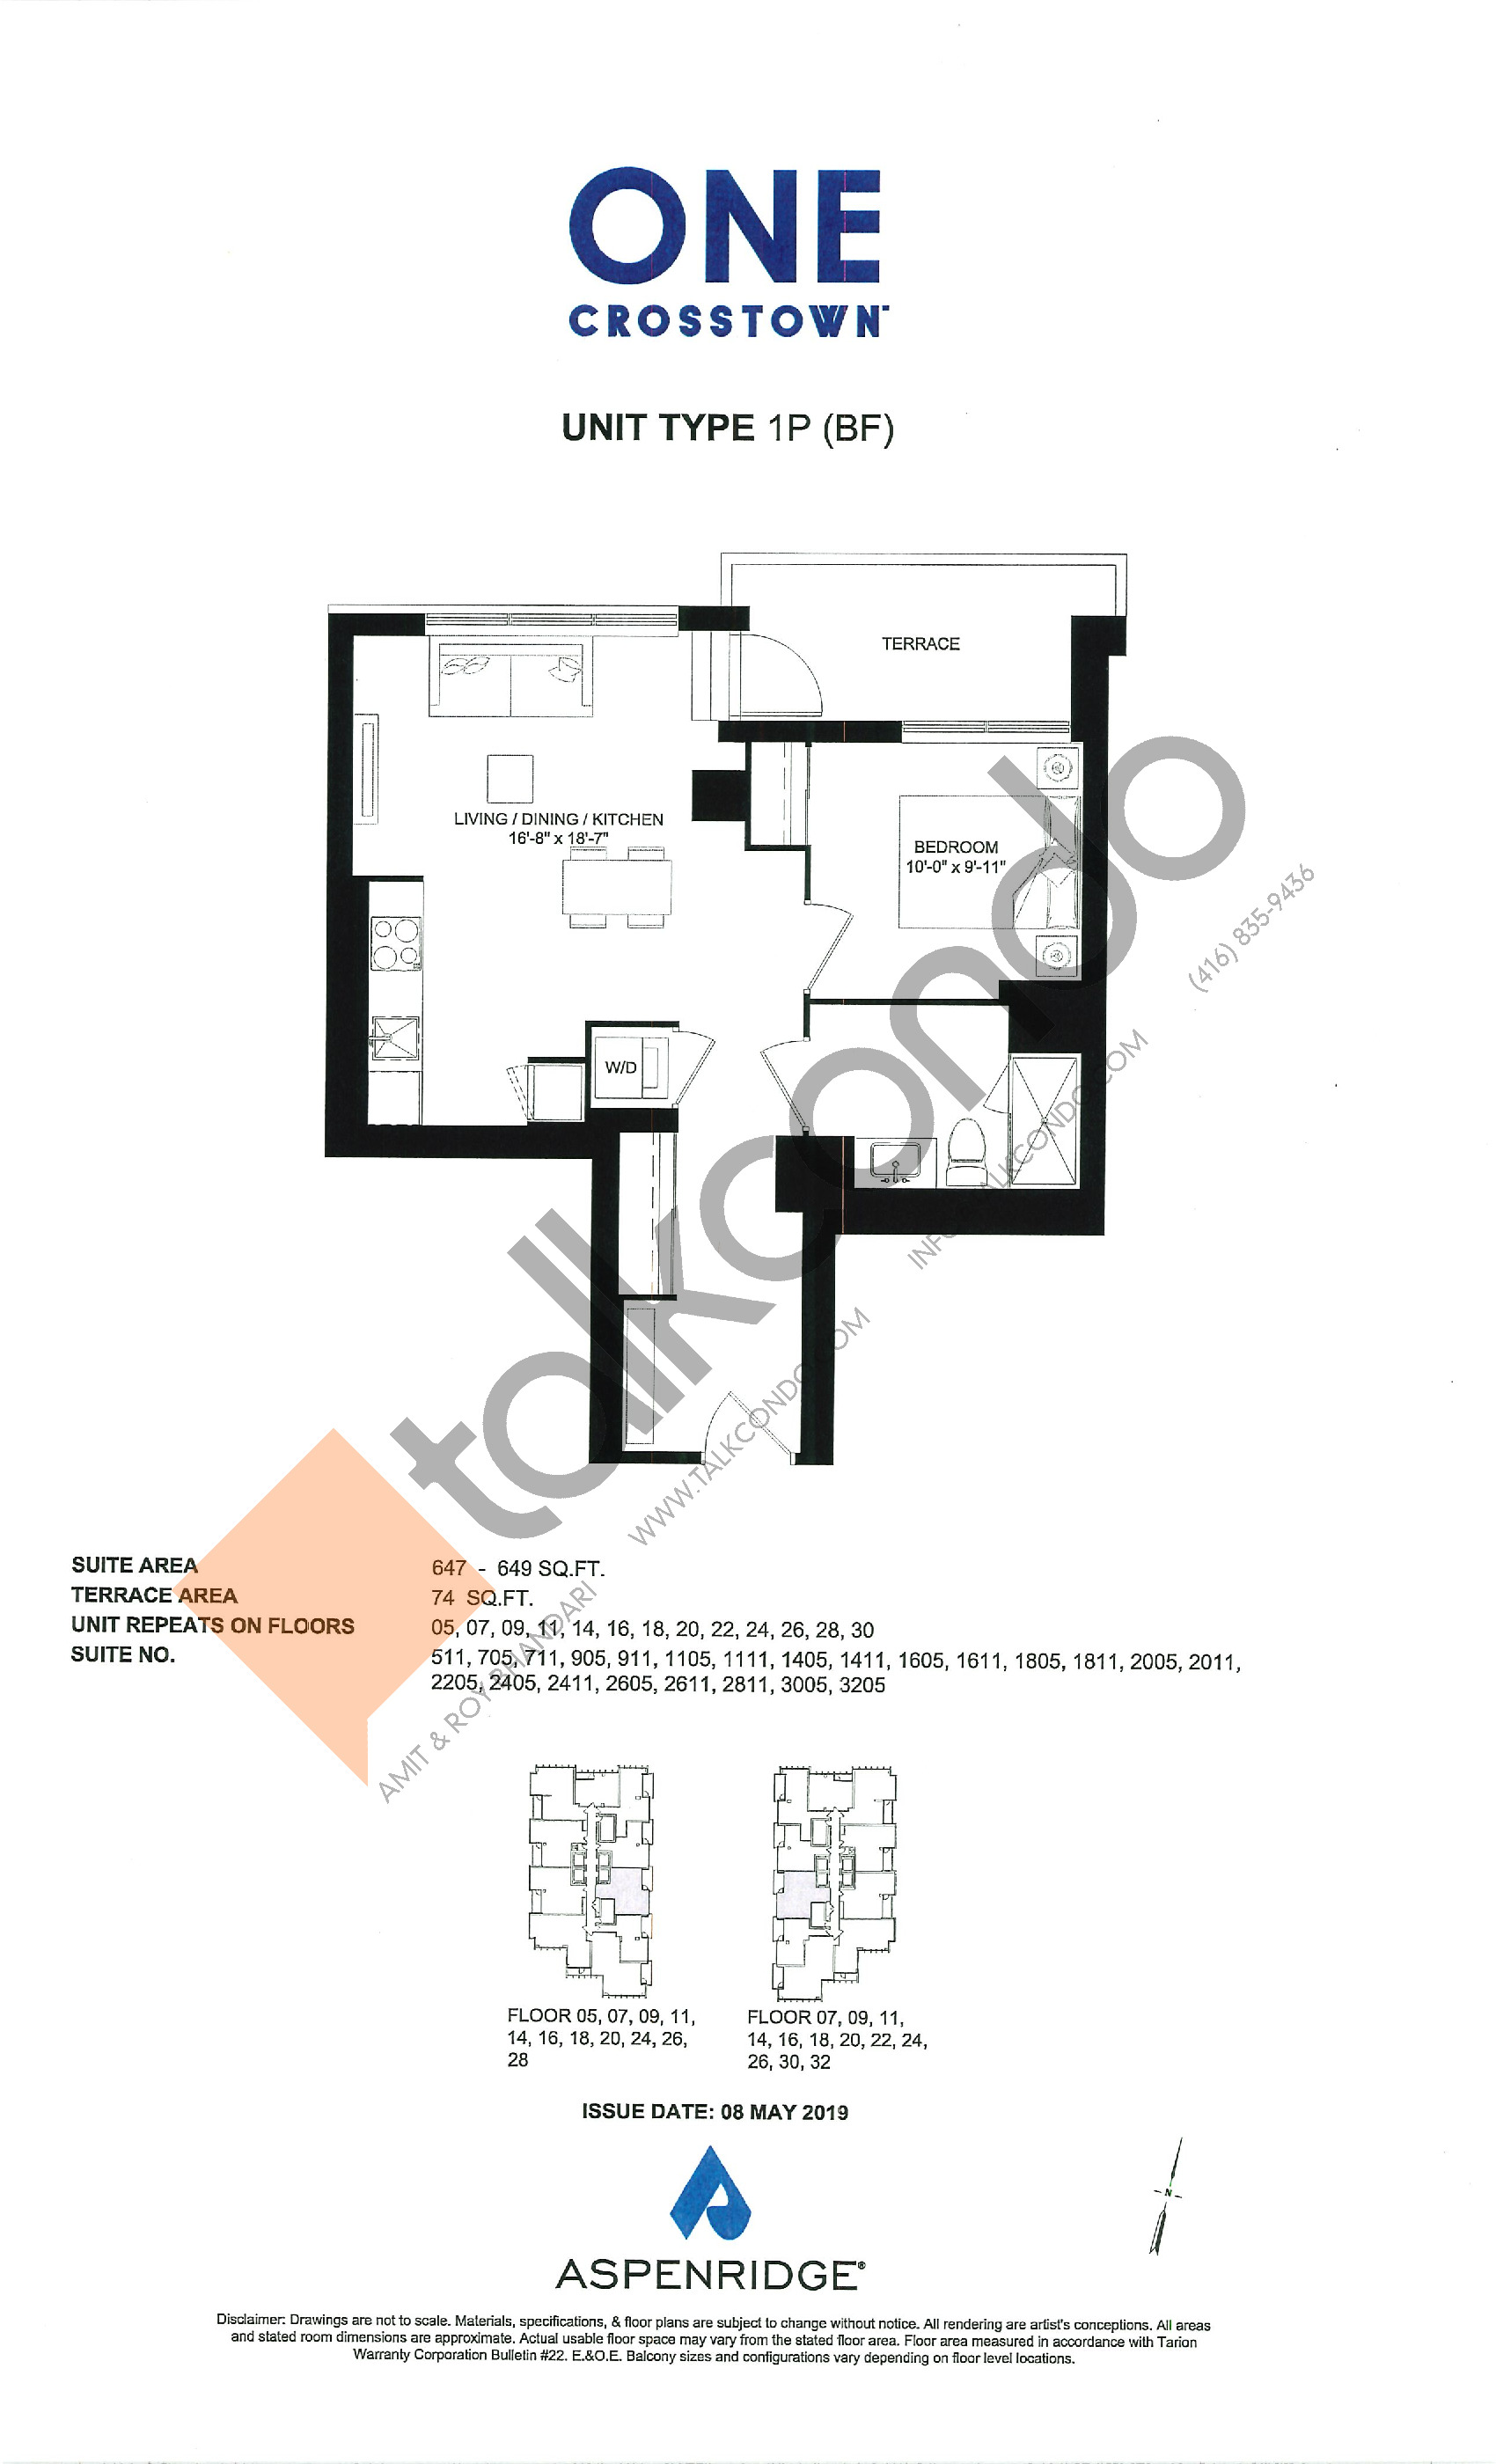 1P (BF) Floor Plan at One Crosstown Condos - 649 sq.ft